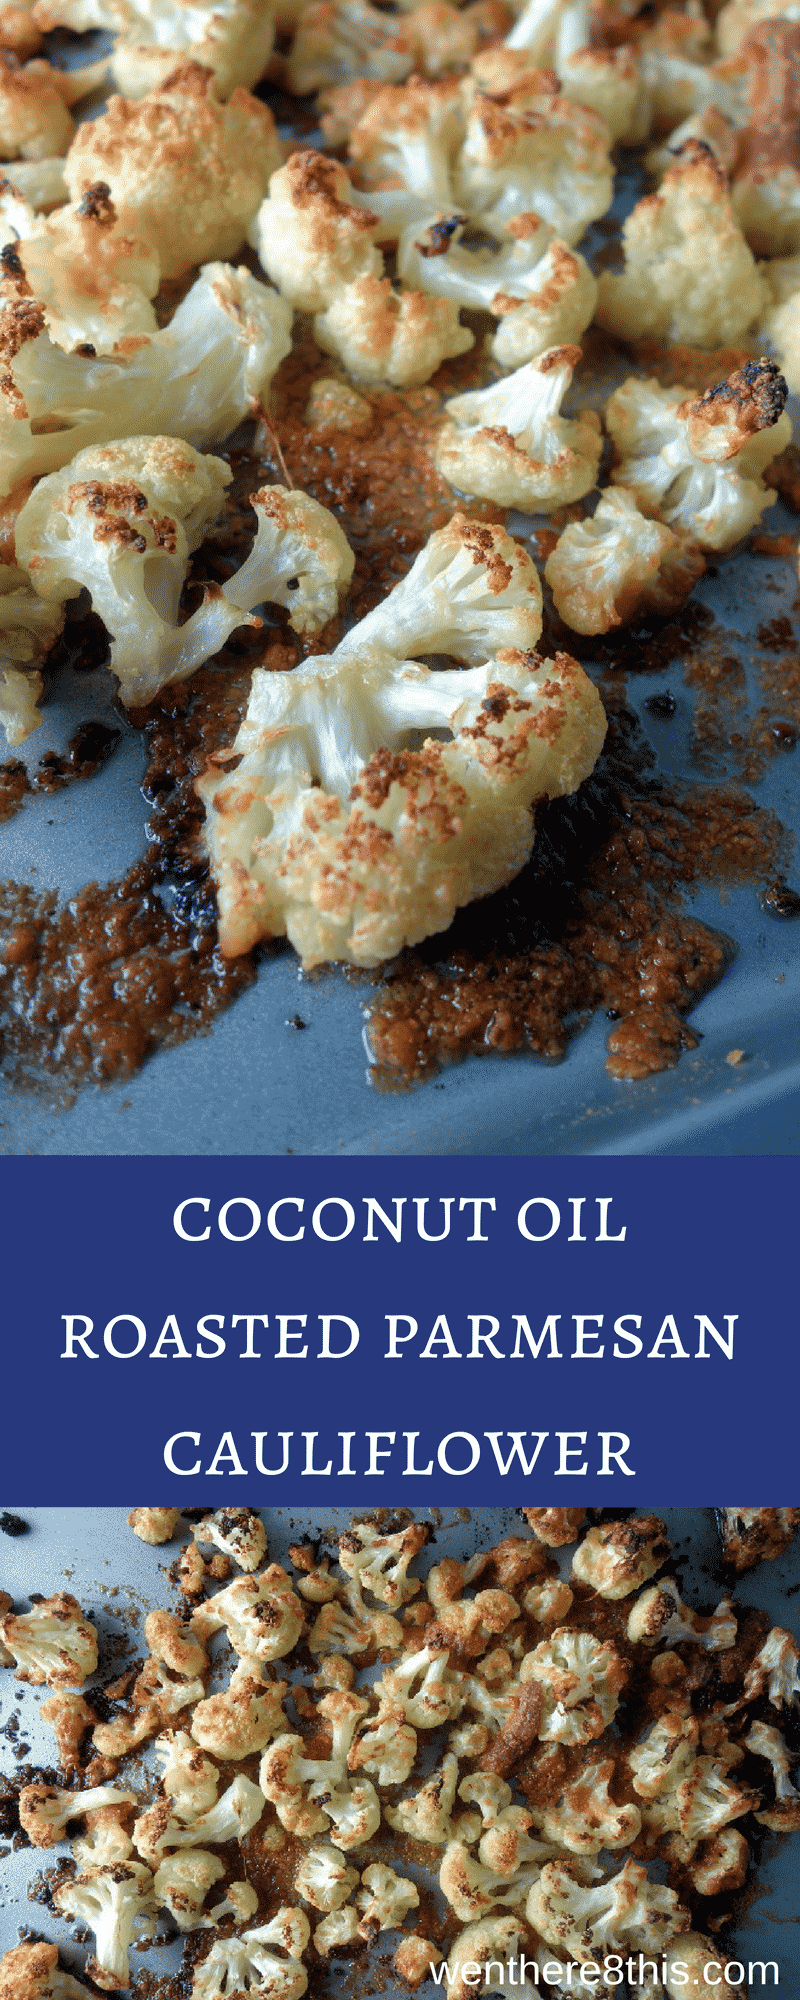 This coconut oil roasted parmesan cauliflower is easy to make and delicious, roasted with coconut and parmesan cheese for perfectly crisp caramelized edges.parmesan roasted cauliflower | healthy roasted cauliflower | easy roasted cauliflower | coconut oil recipes | keto cauliflower bites | low carb cauliflower bites | coconut oil roasted vegetables | paleo cauliflower